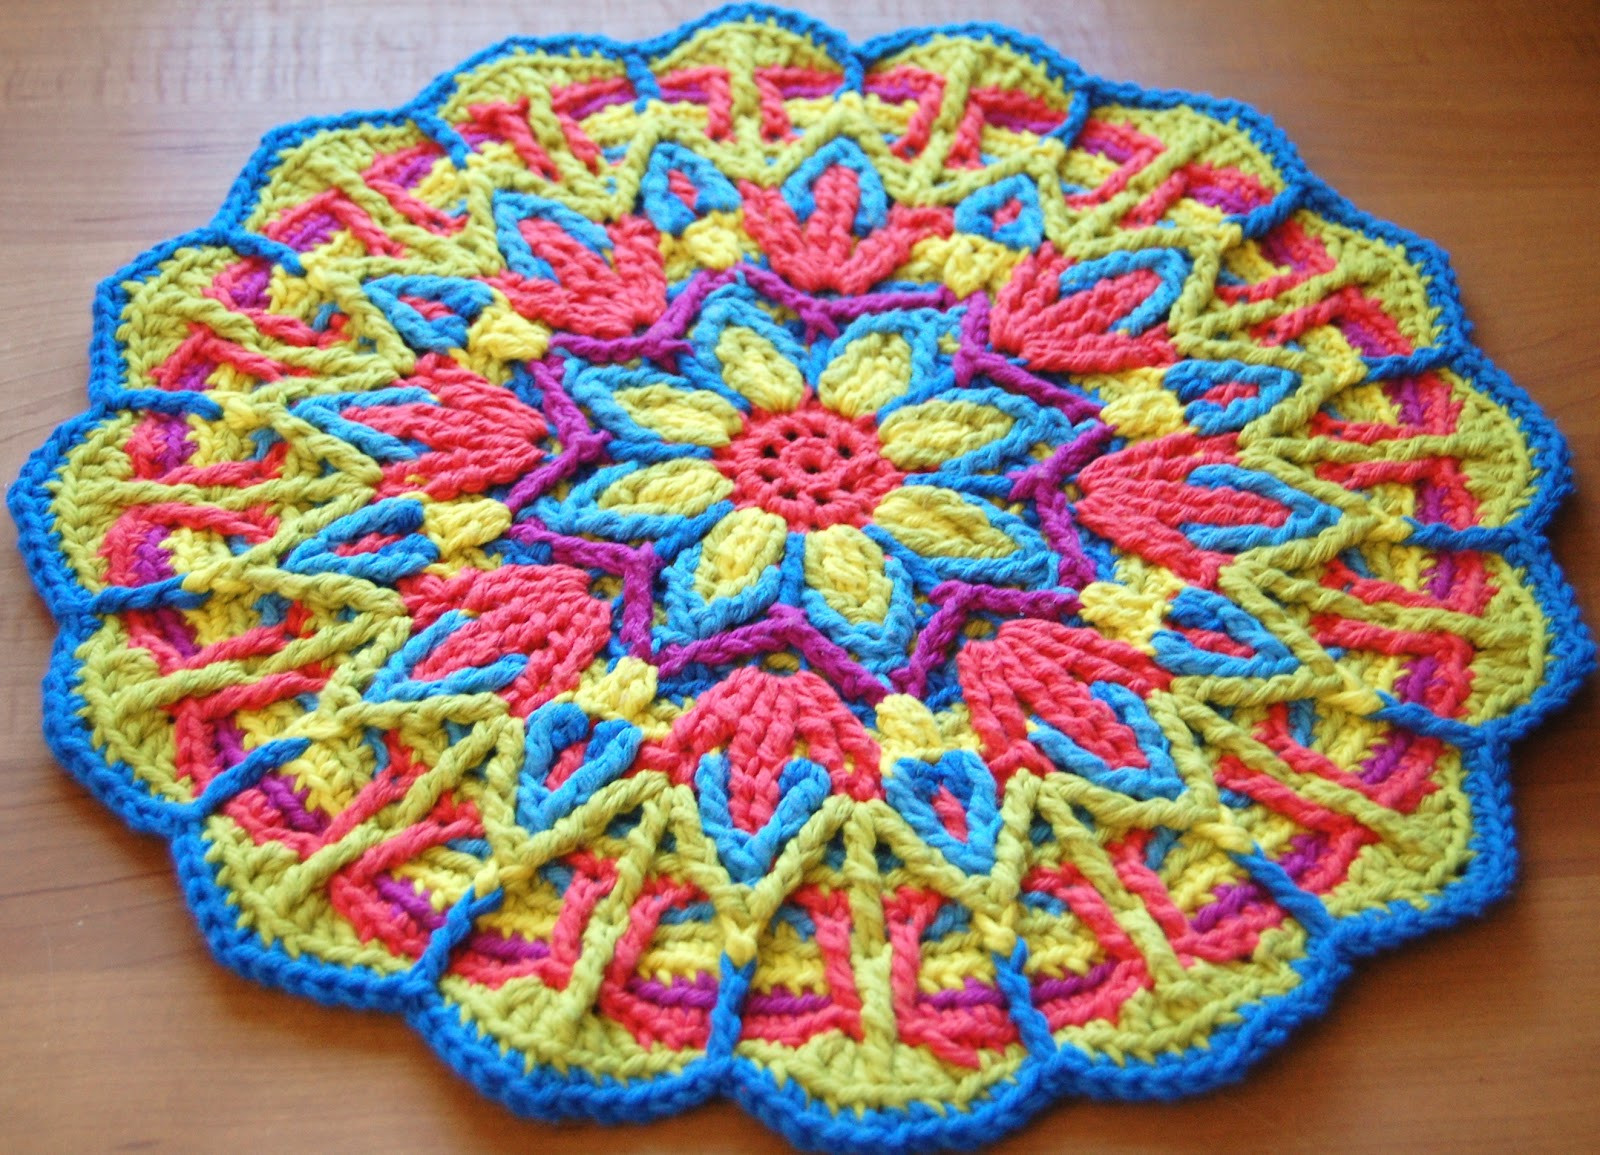 Crochet Mandalas Lovely Overlay Crochet Mandala Cal Of Incredible 41 Pics Crochet Mandalas